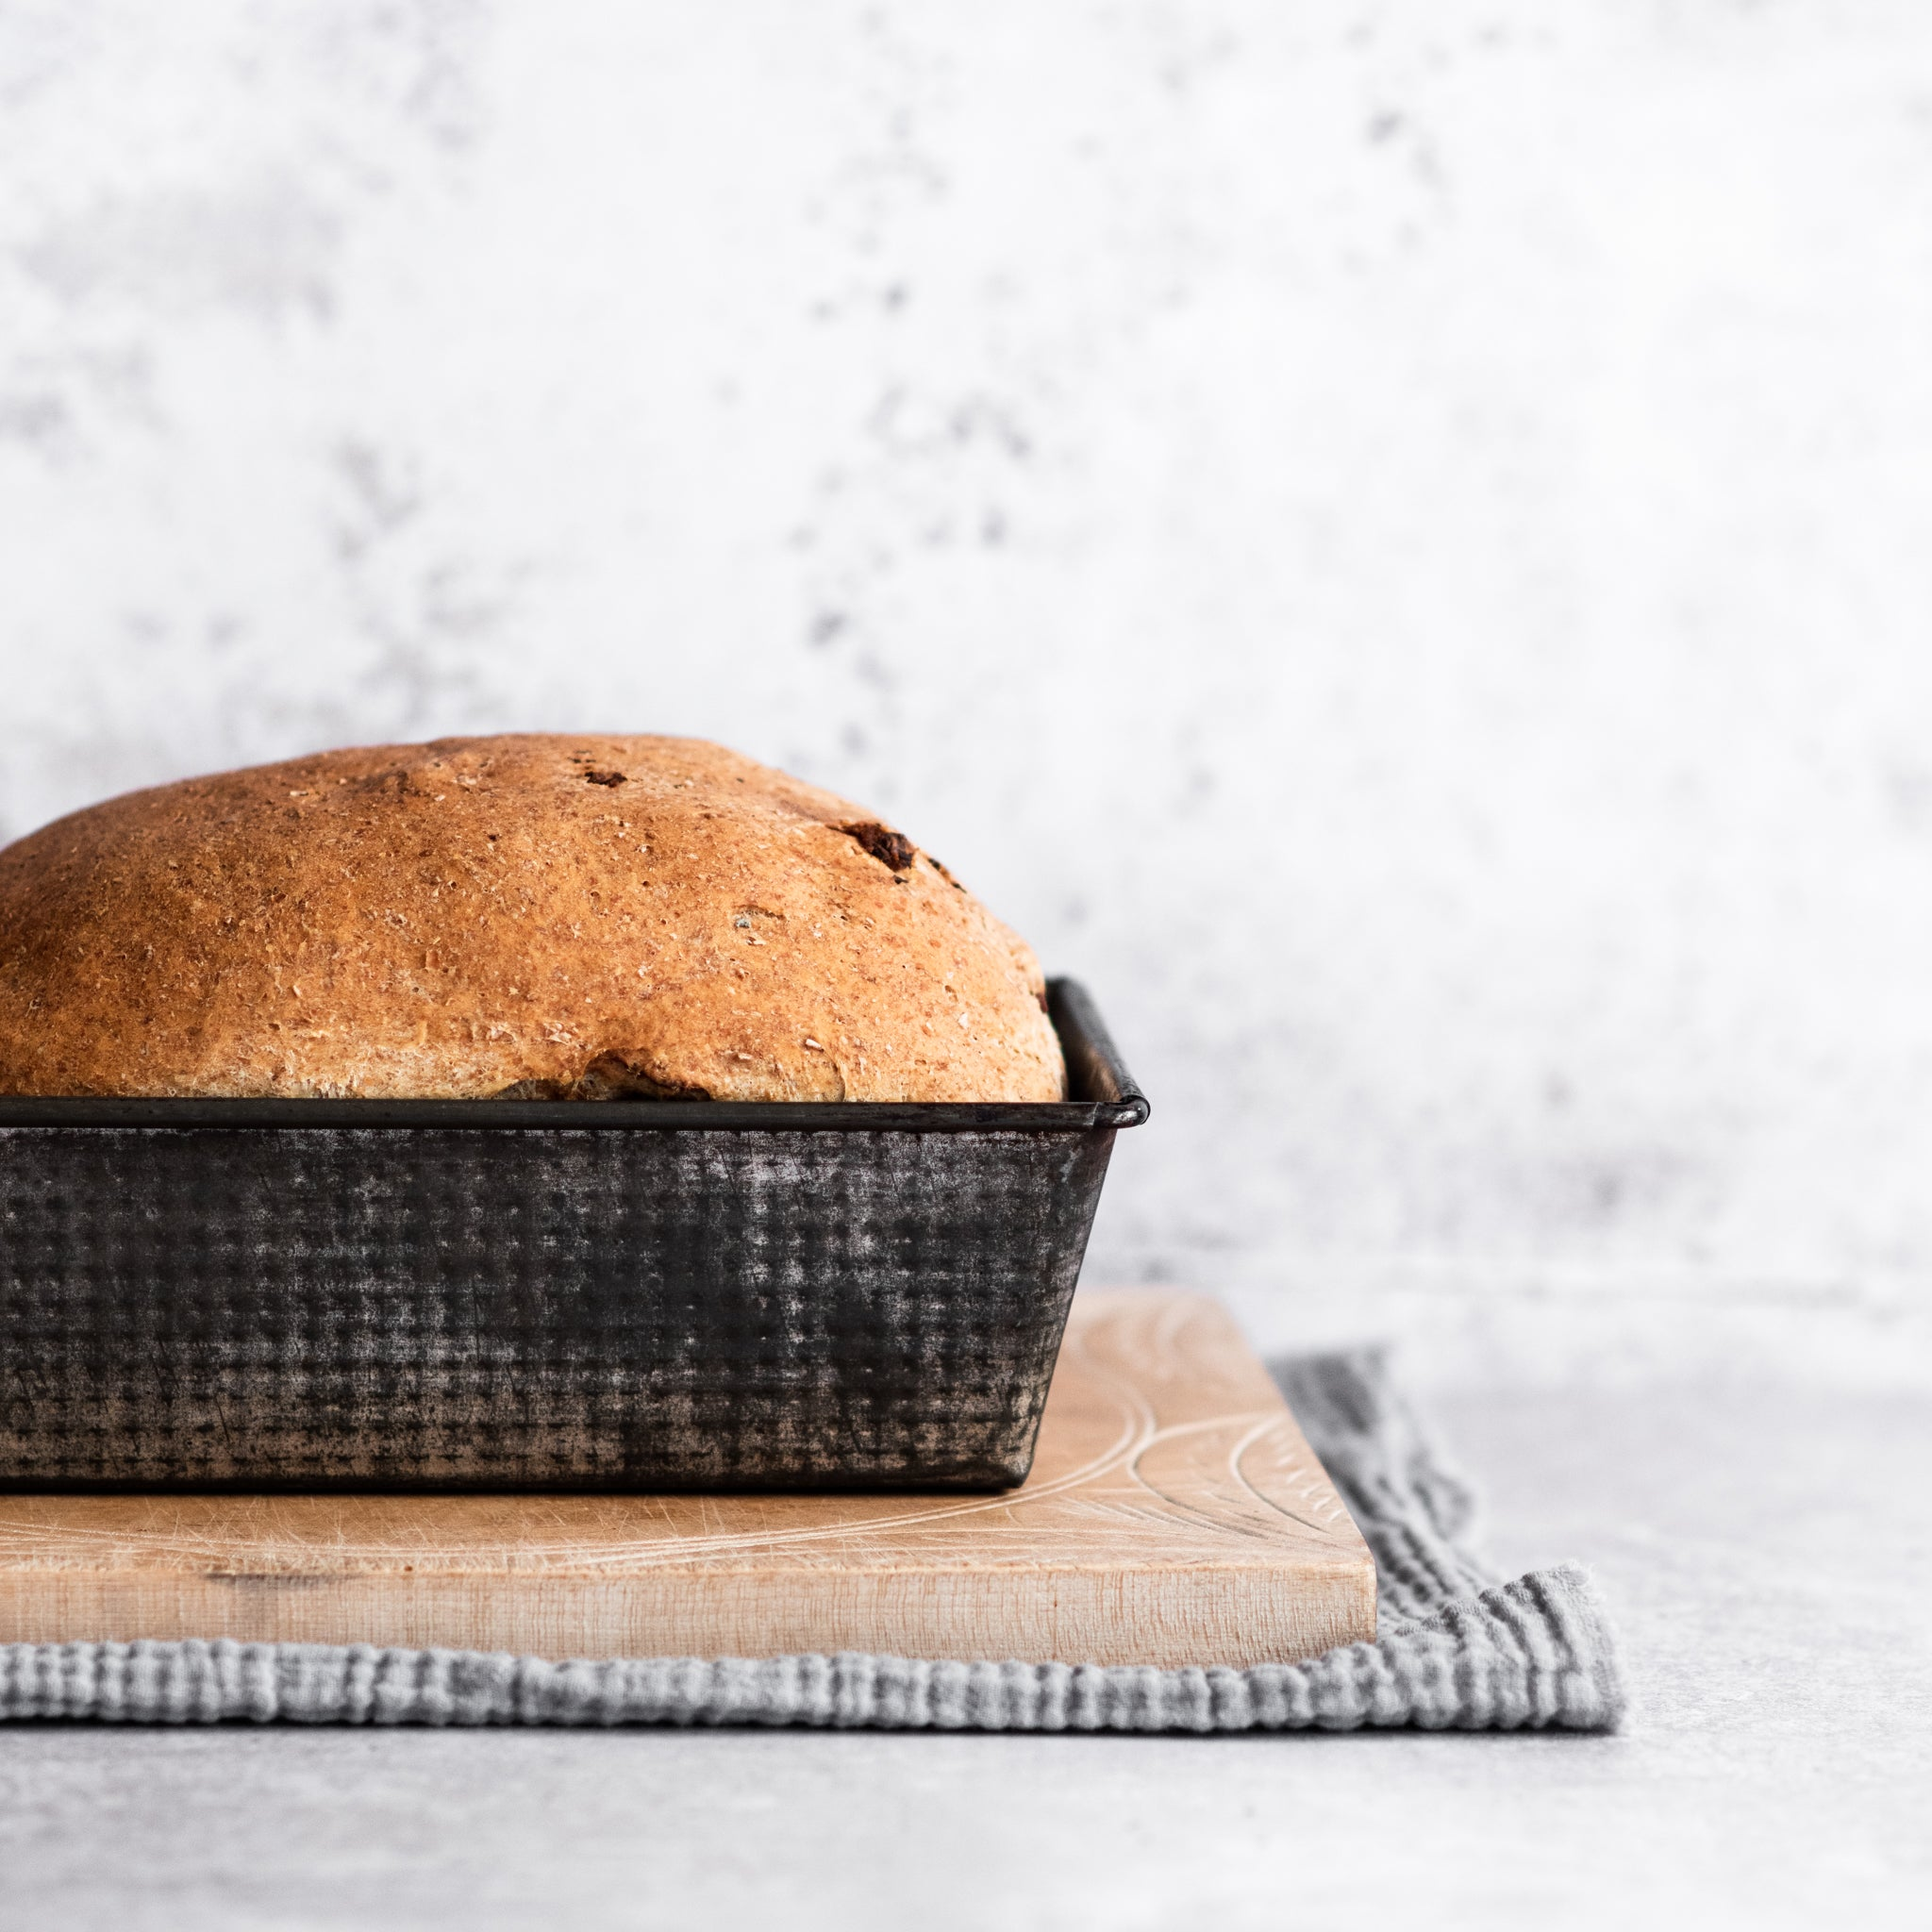 Loaf of bread in a baking tin